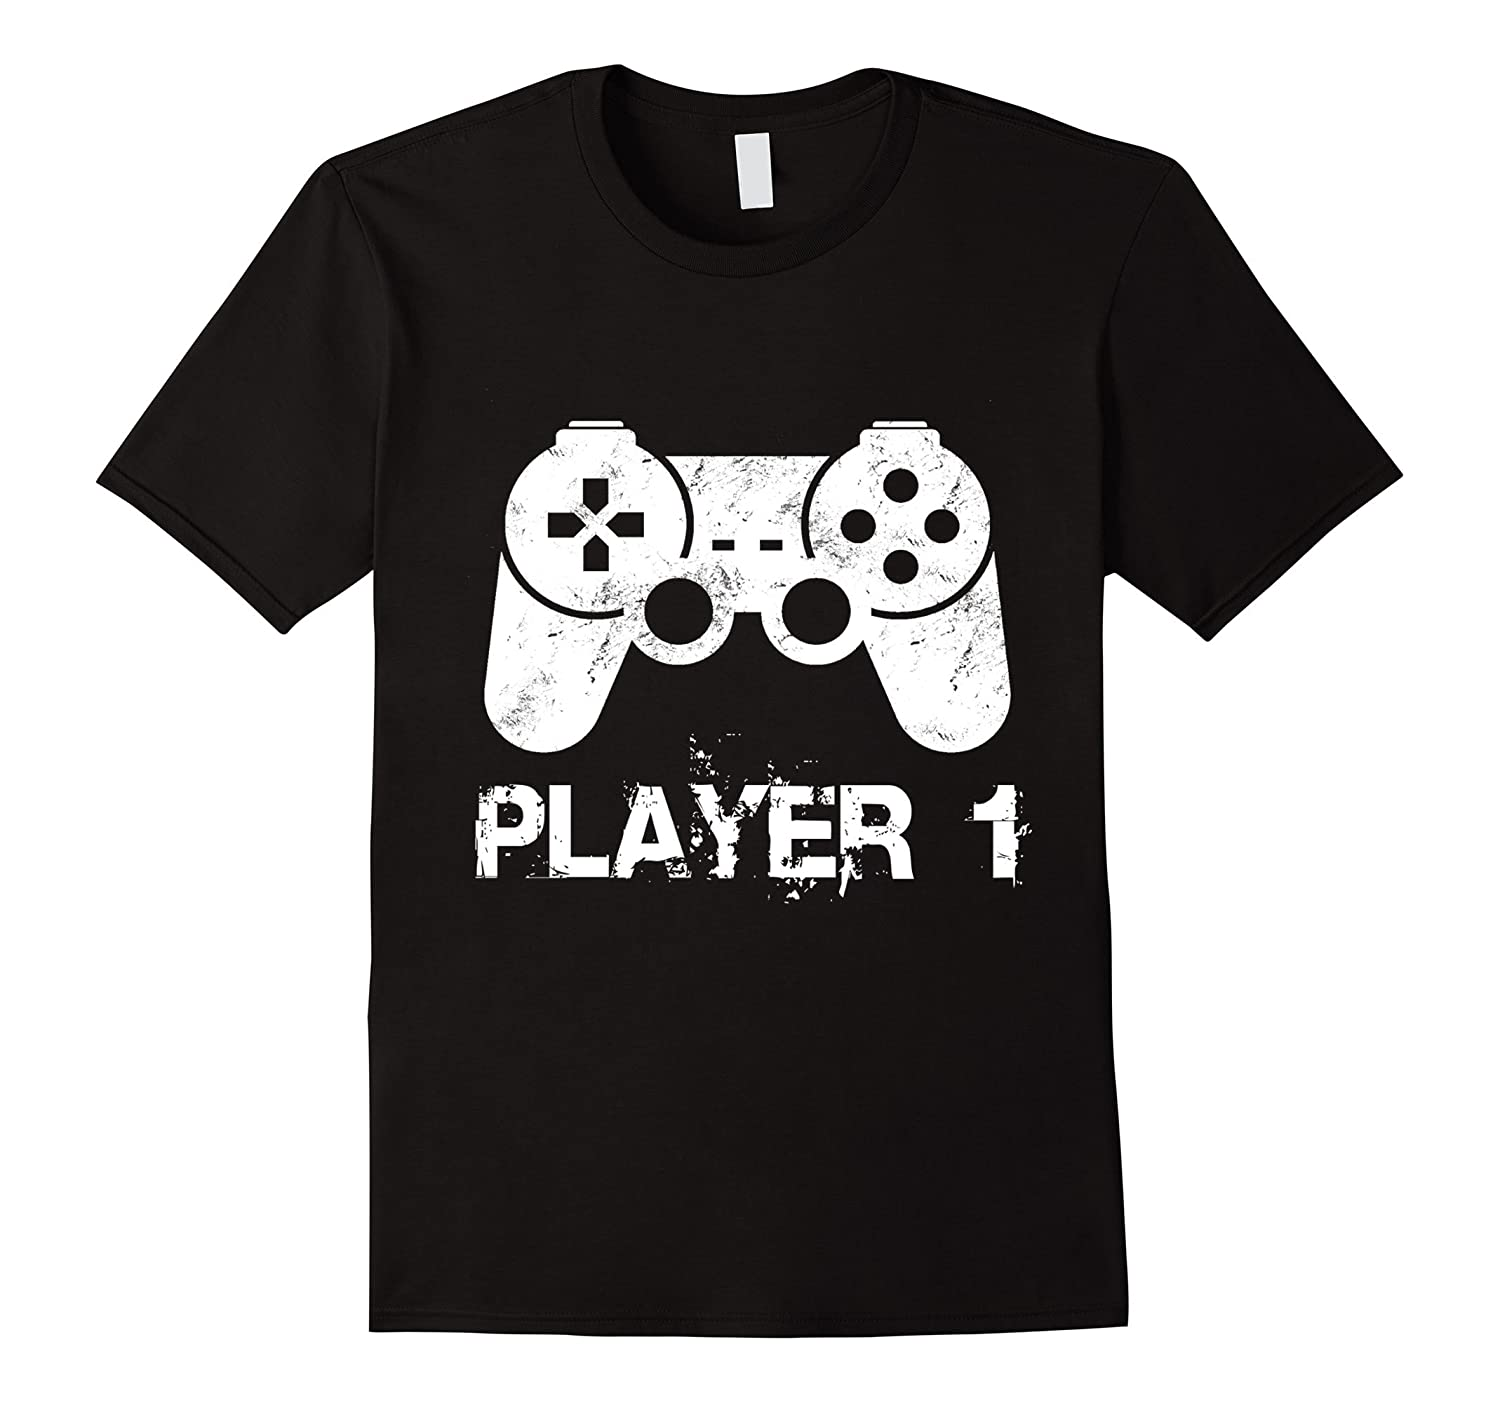 a772a2bb081e1 Player 1 Player 2 Matching shirts- Father Son Matching shirt-RT ...